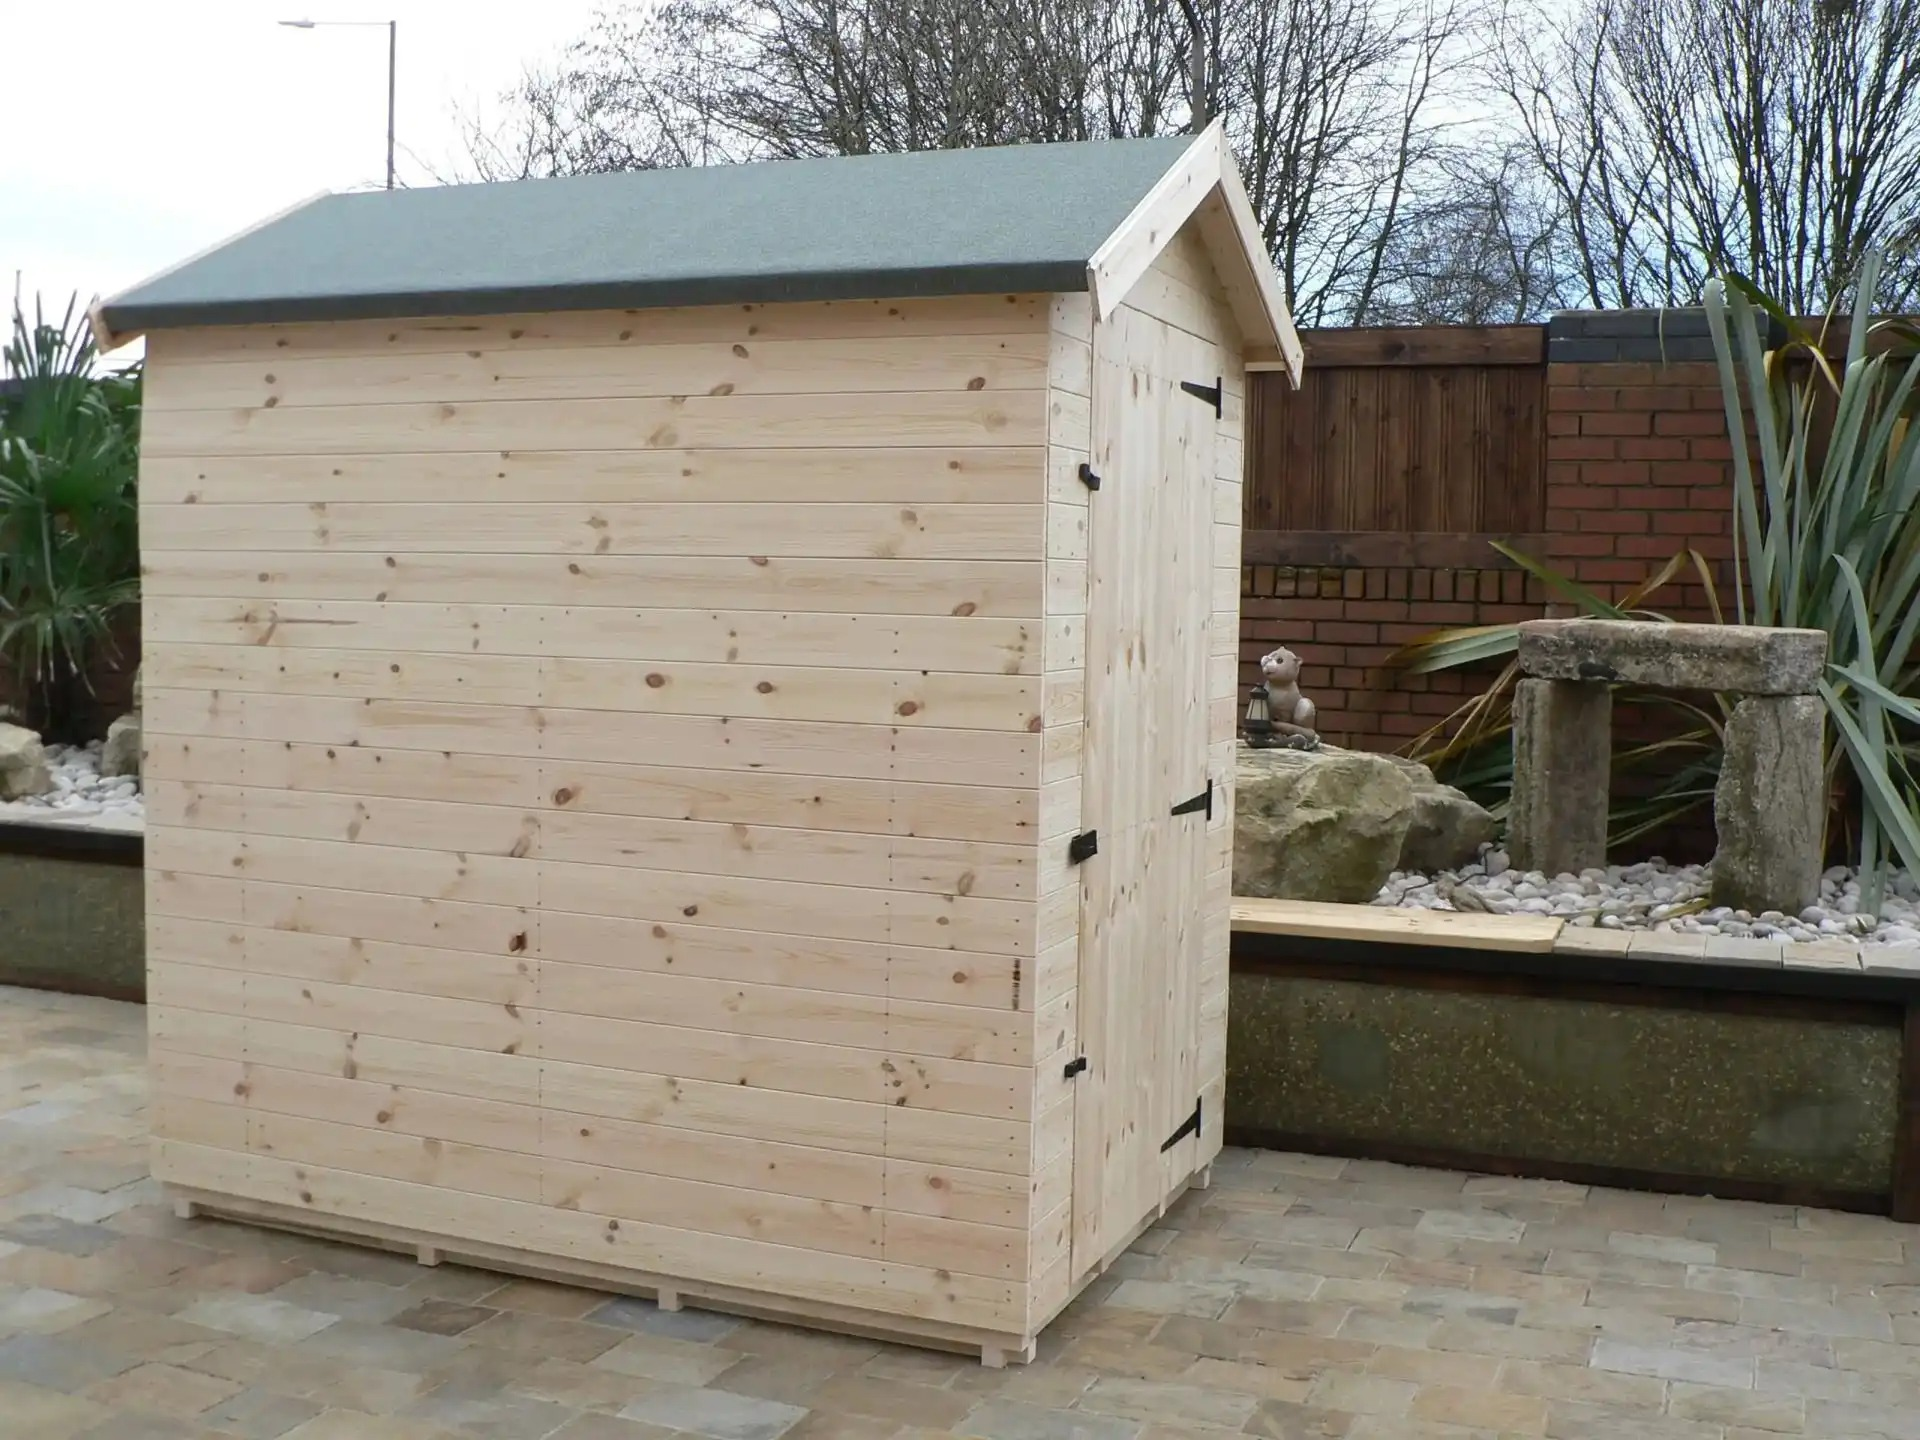 6' X 4' Apex Shed No Windows